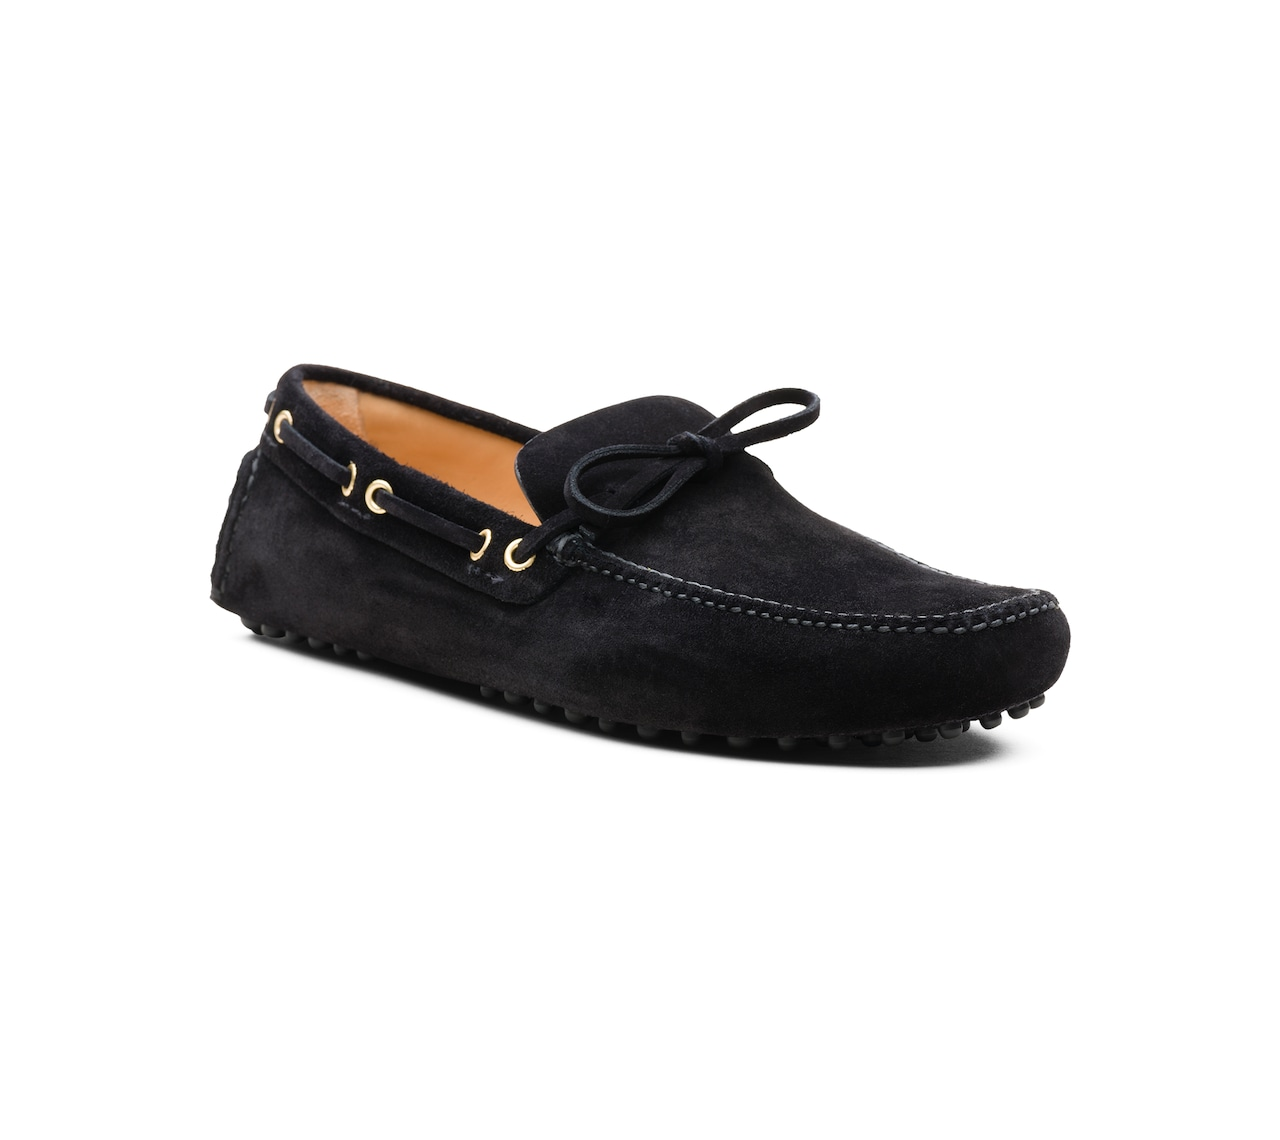 SUEDE DRIVING SHOES BLACK